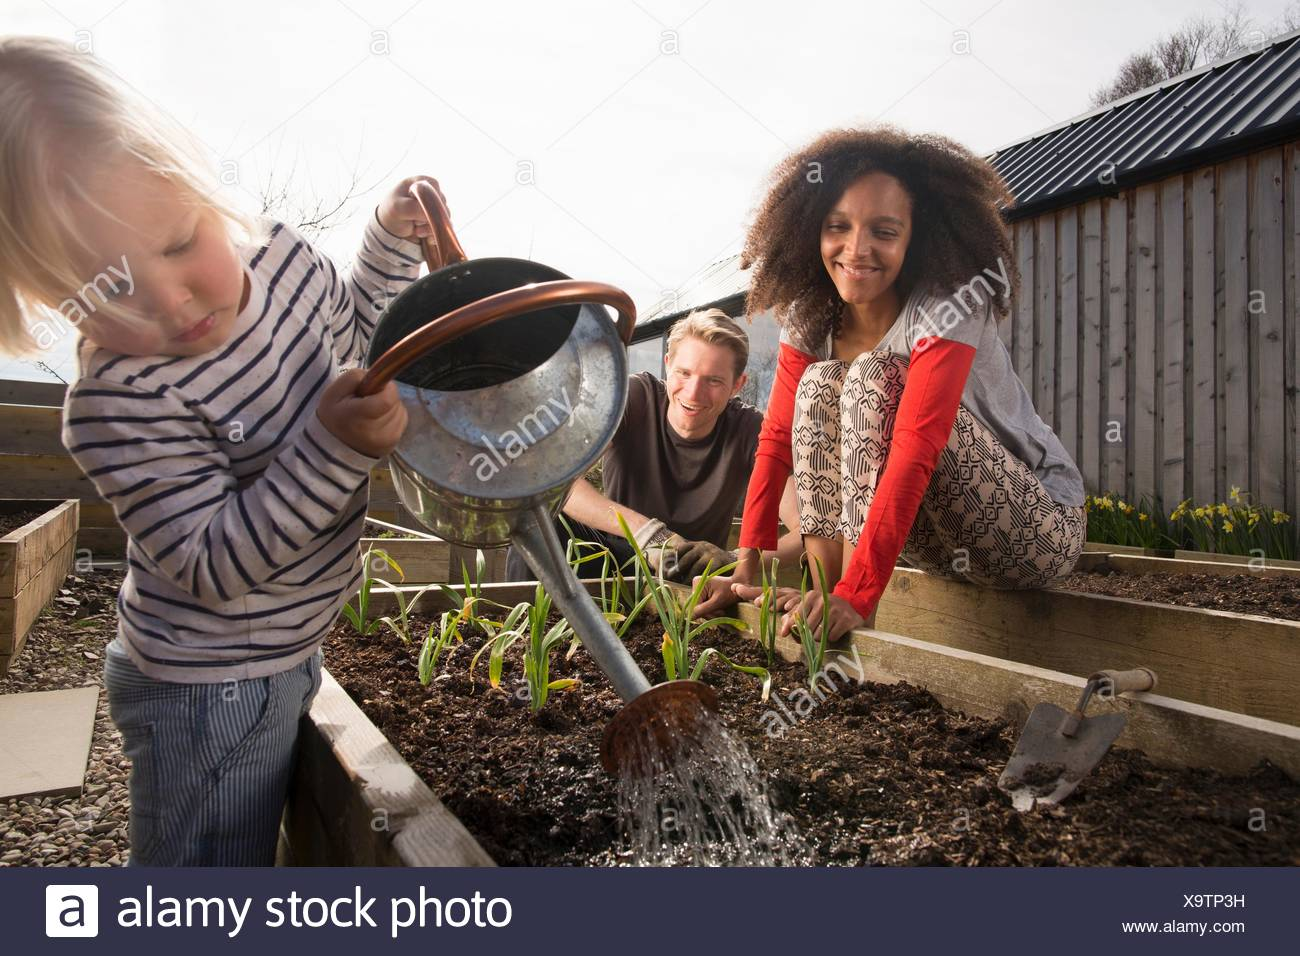 Son watering plants, parents watching - Stock Image